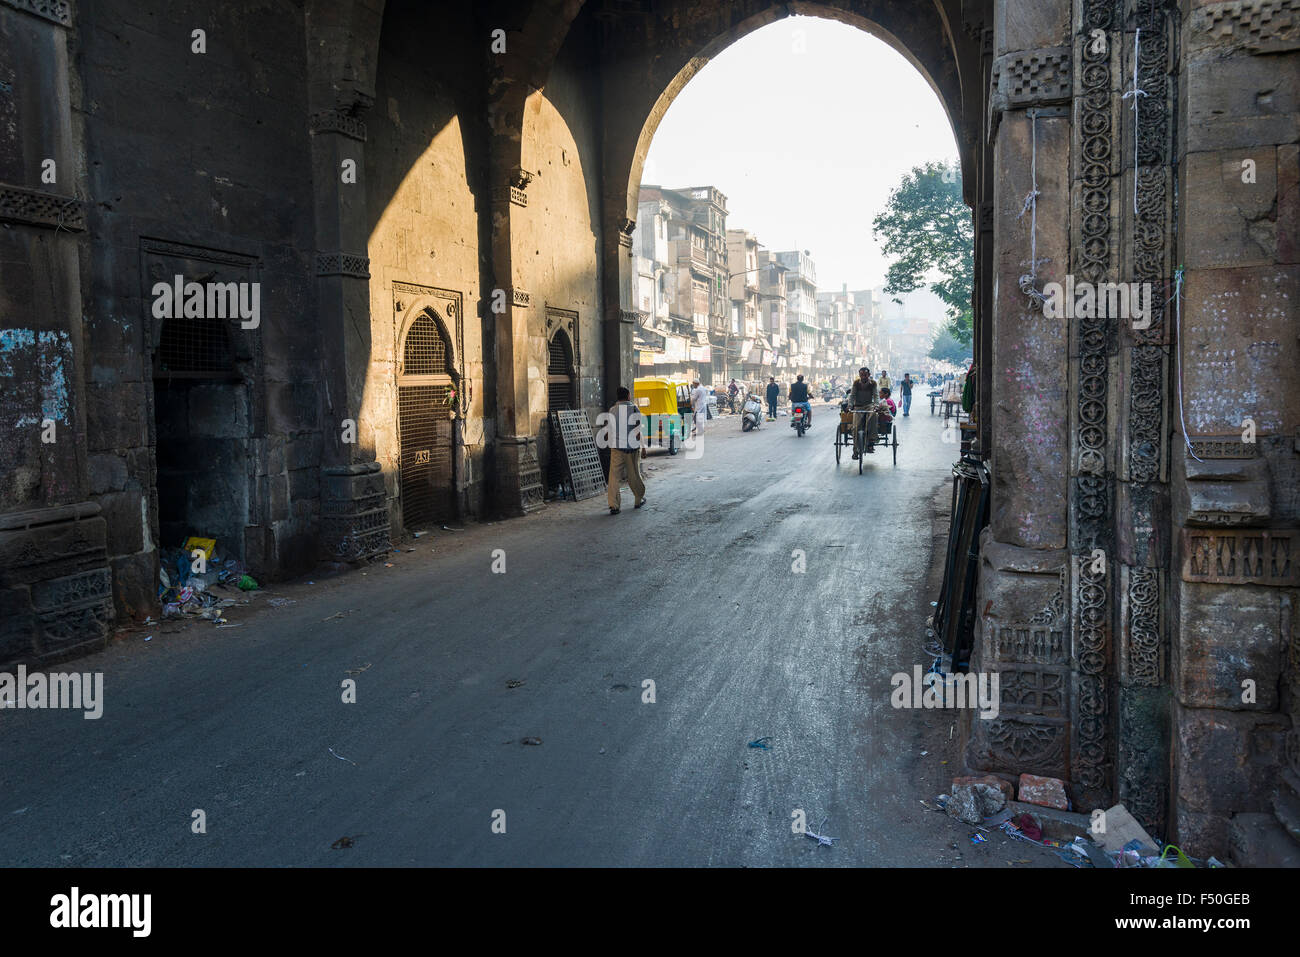 One of the historic City Gates of the old city with pedestrians and a cycle rikshaw - Stock Image